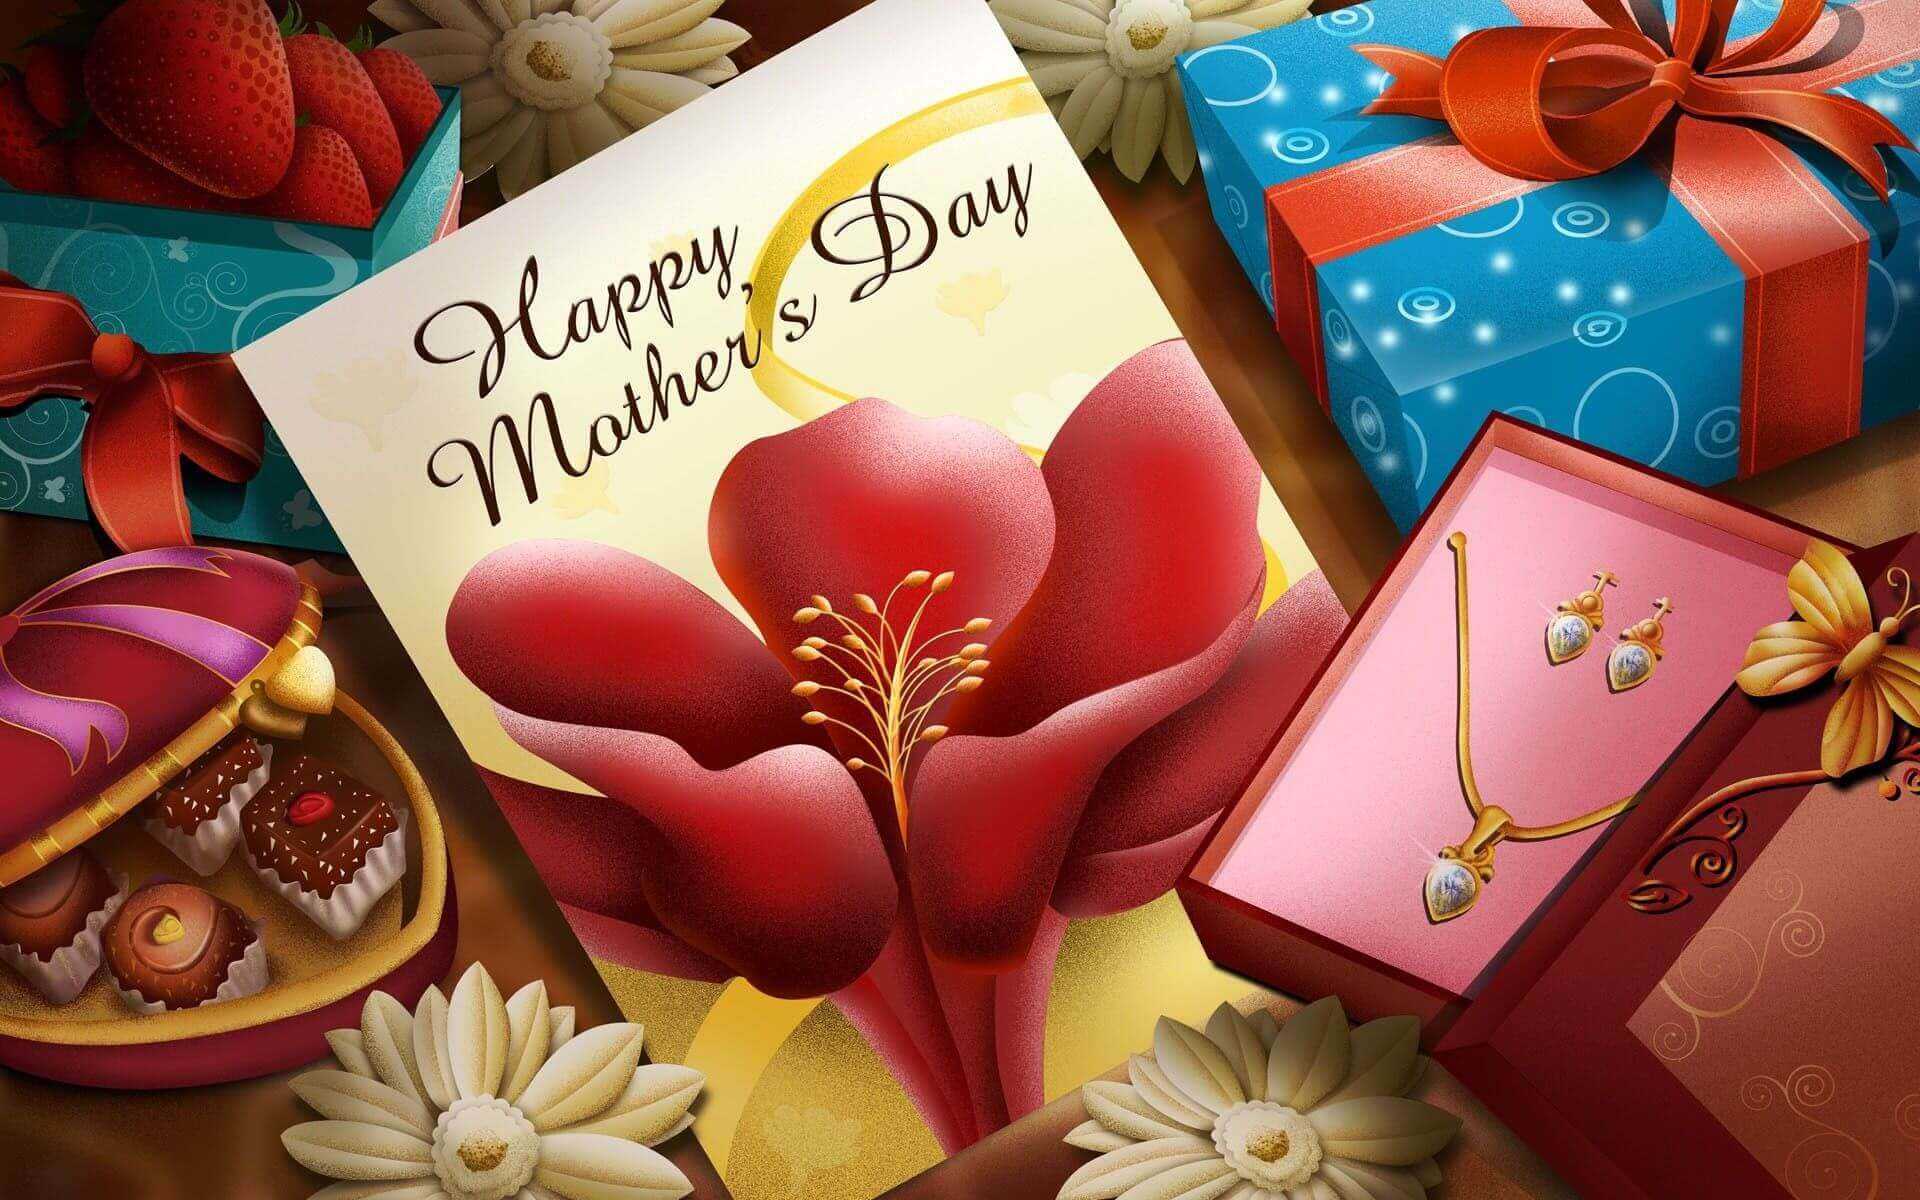 Happy Mothers Day picture with gifts chocolates